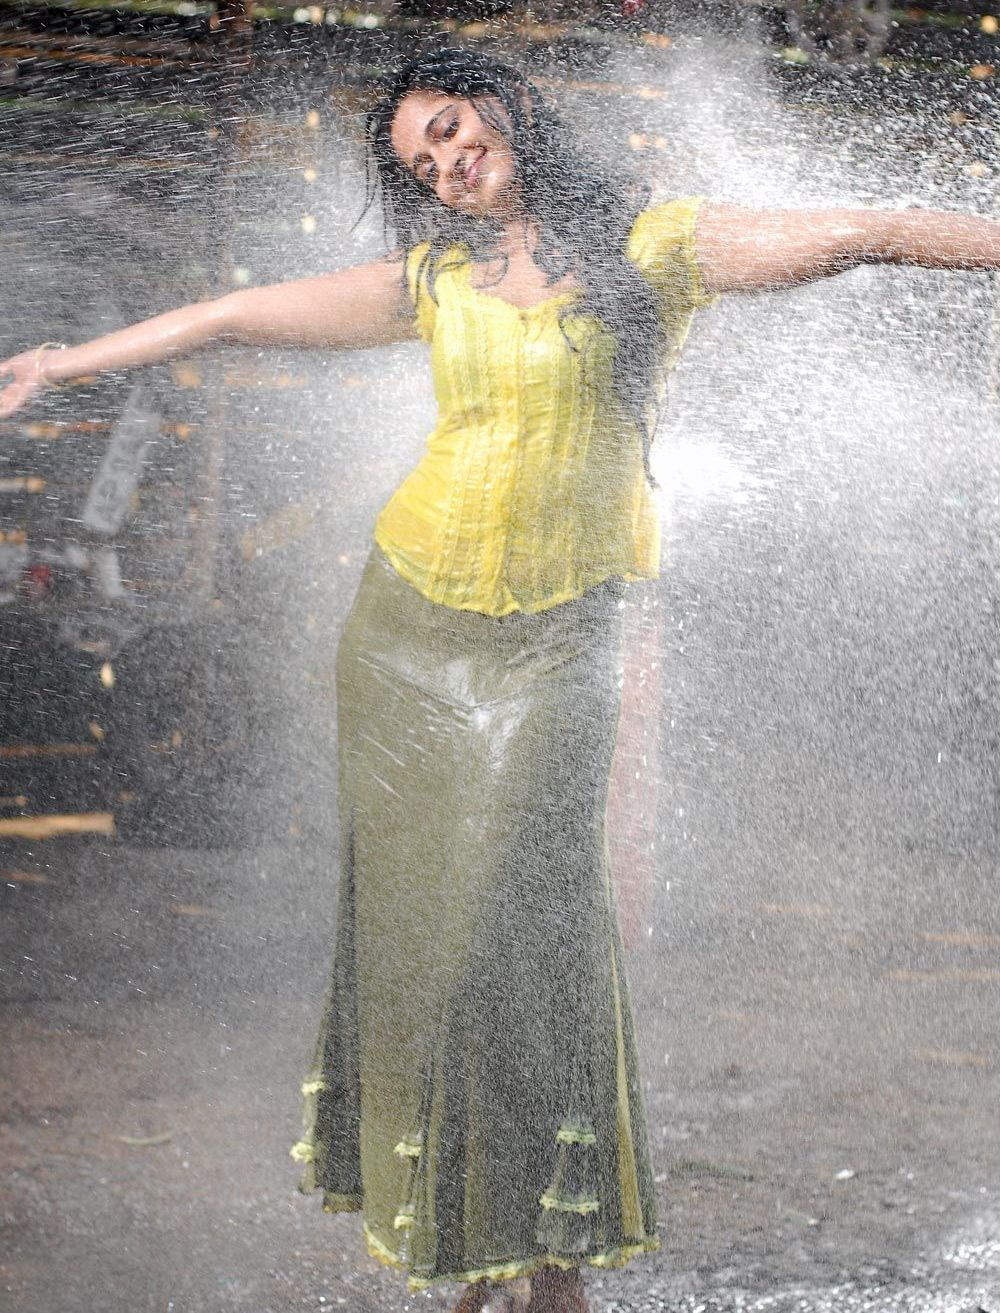 Anushka in wet yellow dress